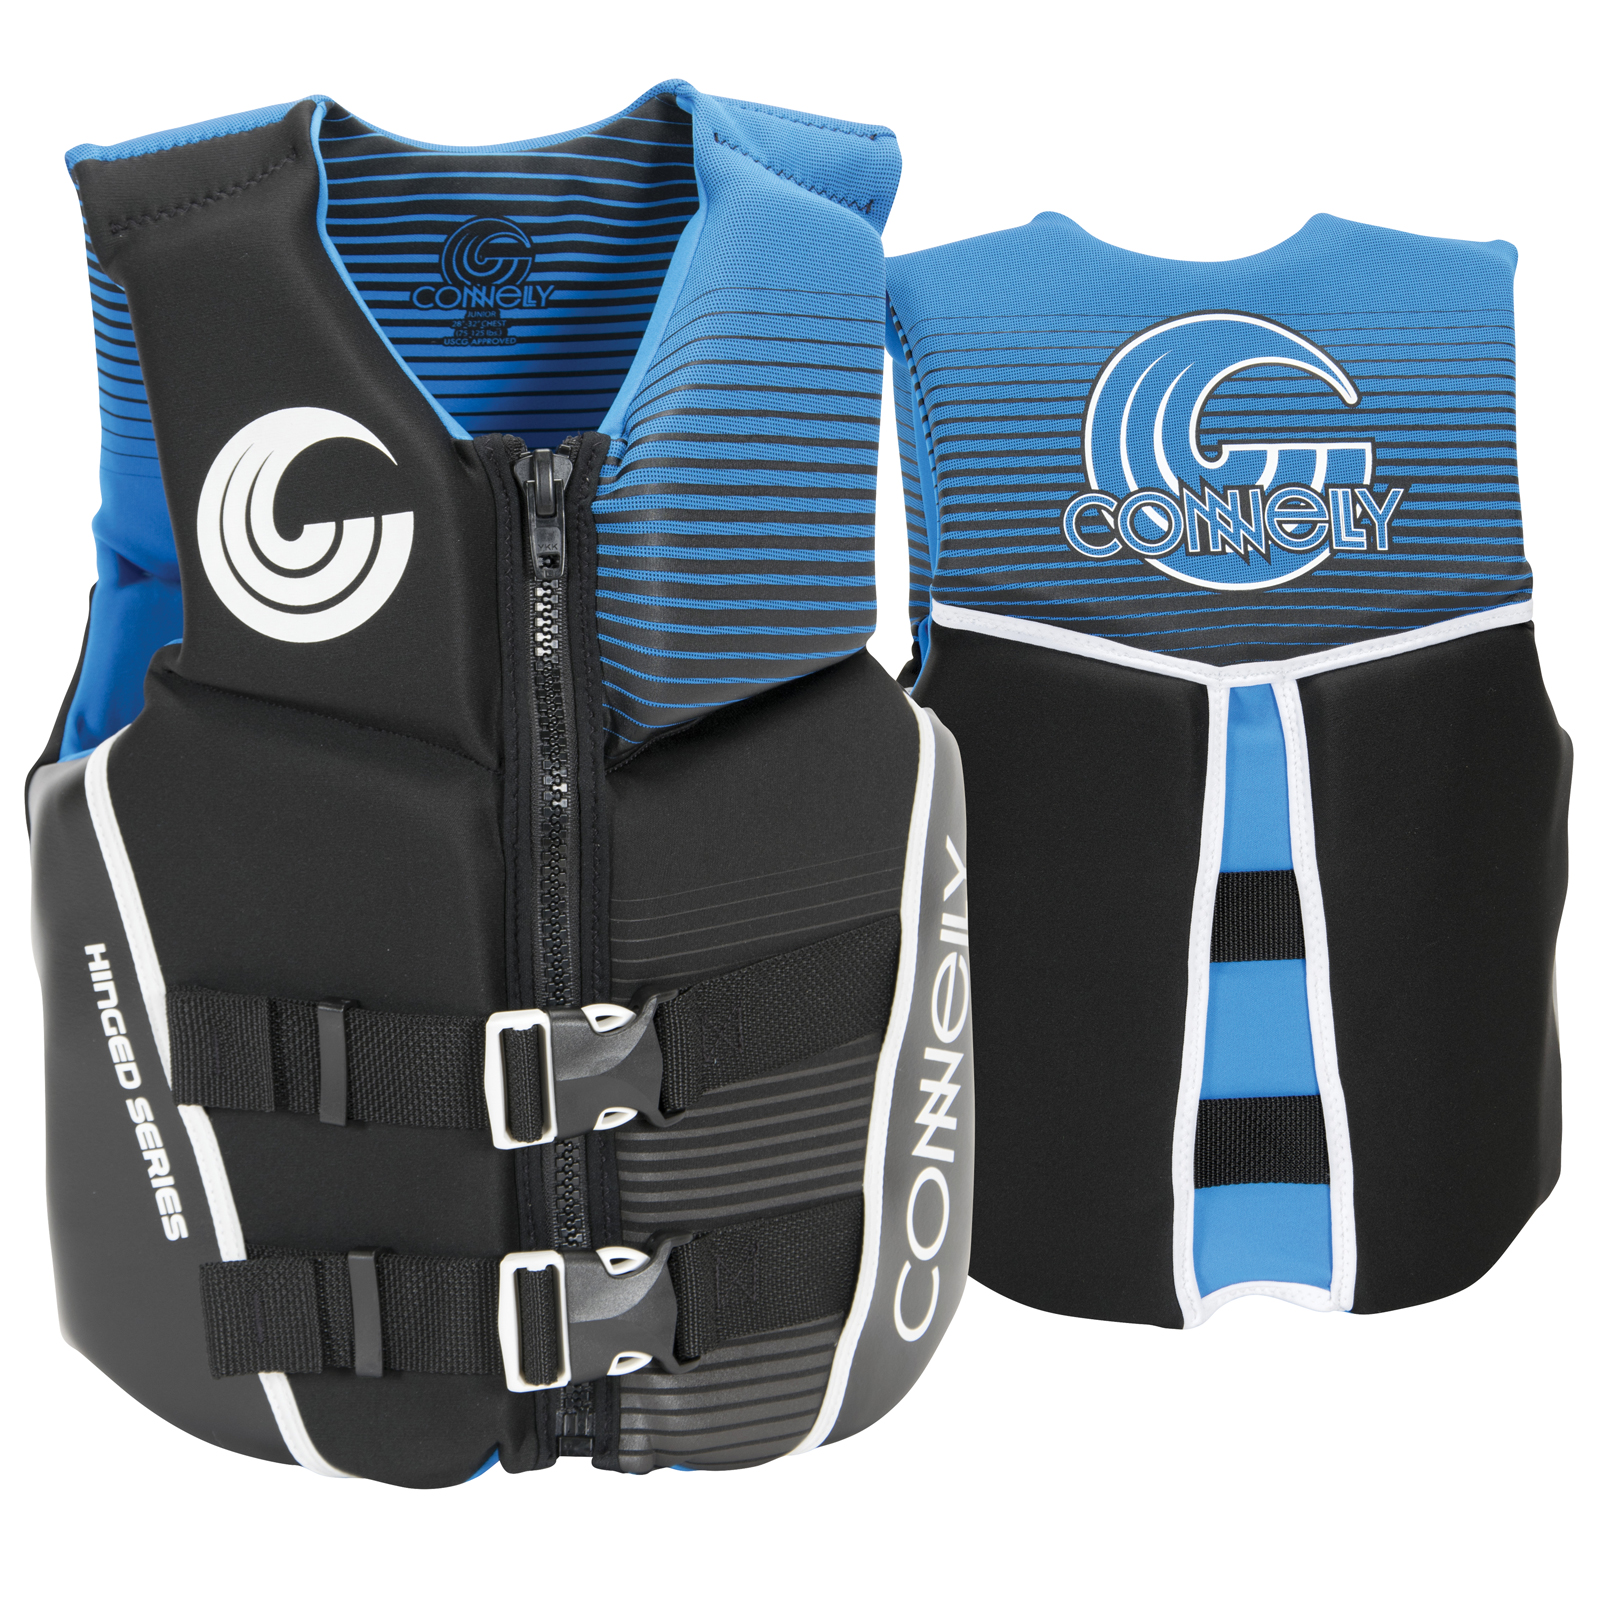 BOY'S CLASSIC NEO LIFE VEST - TEEN 35-55KG CONNELLY 2018